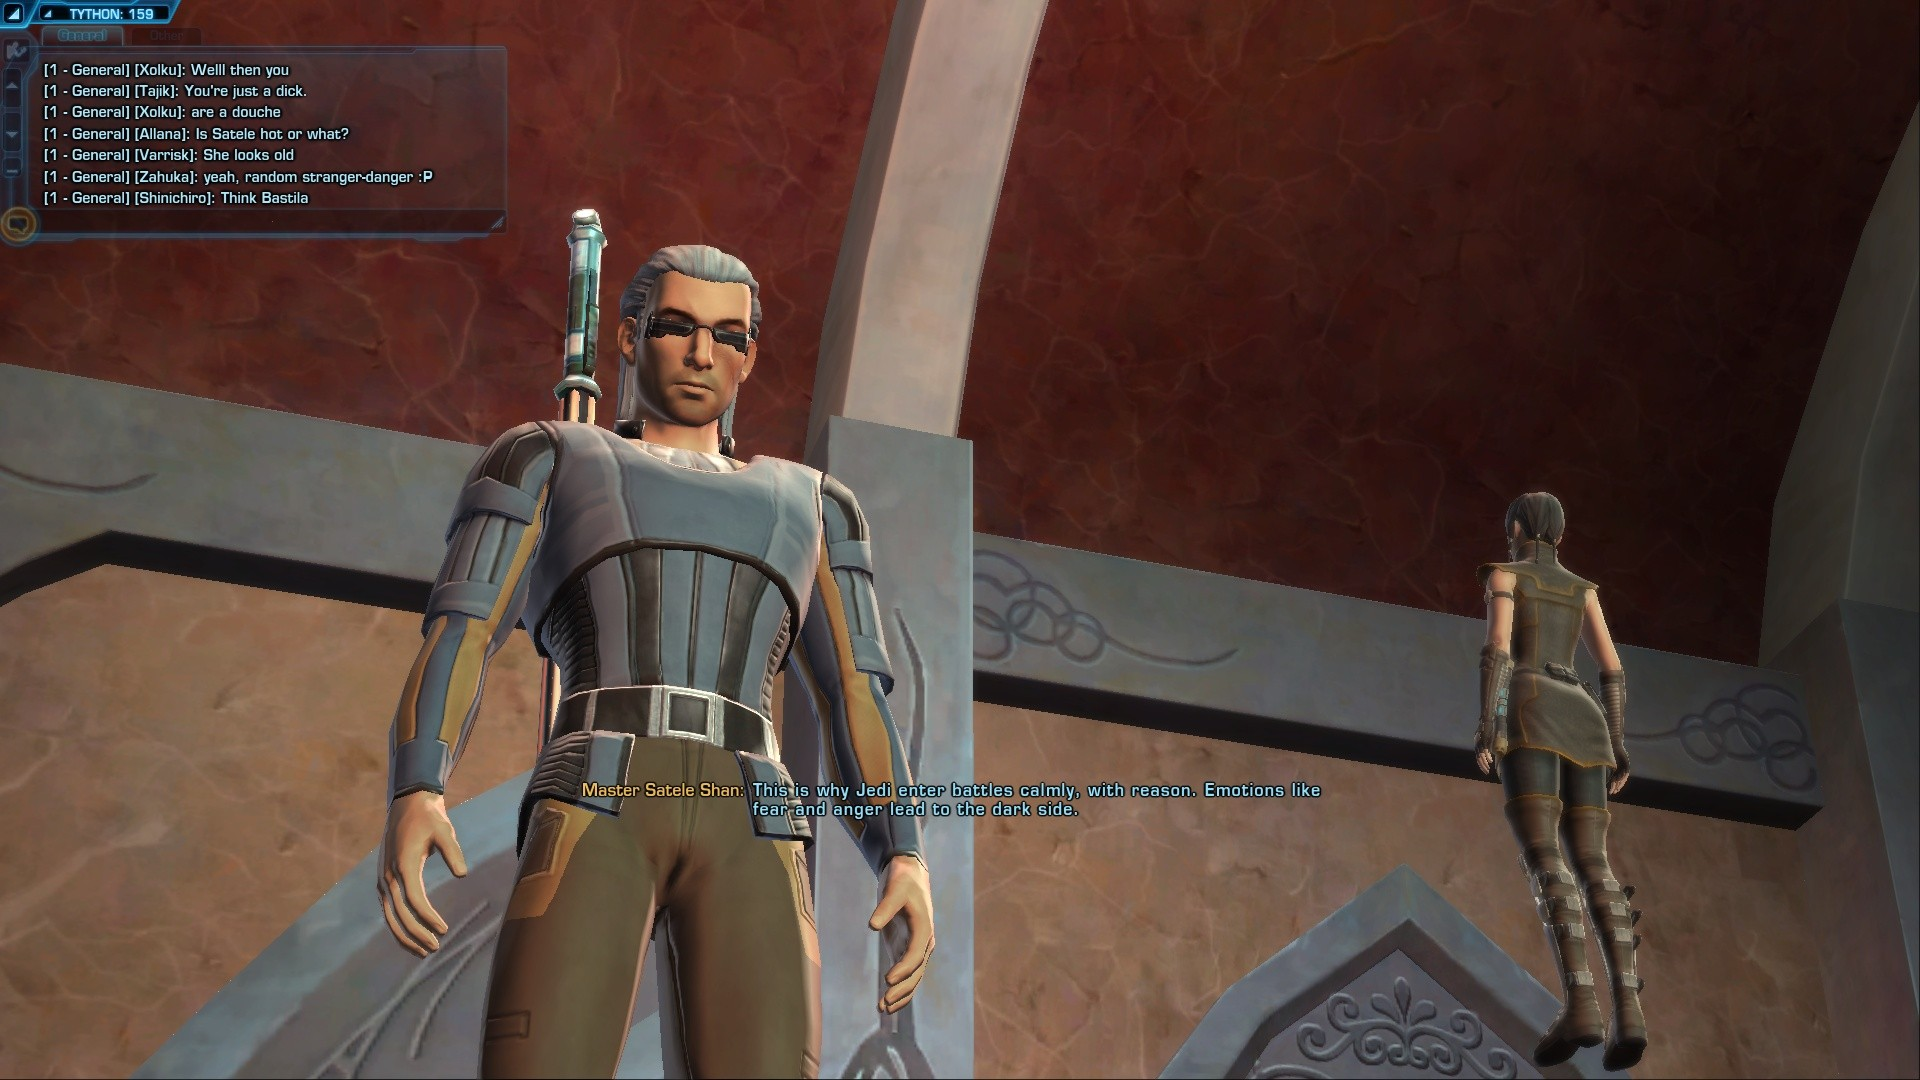 Star Wars: The Old Republic - My Miralukan Jedi Knight